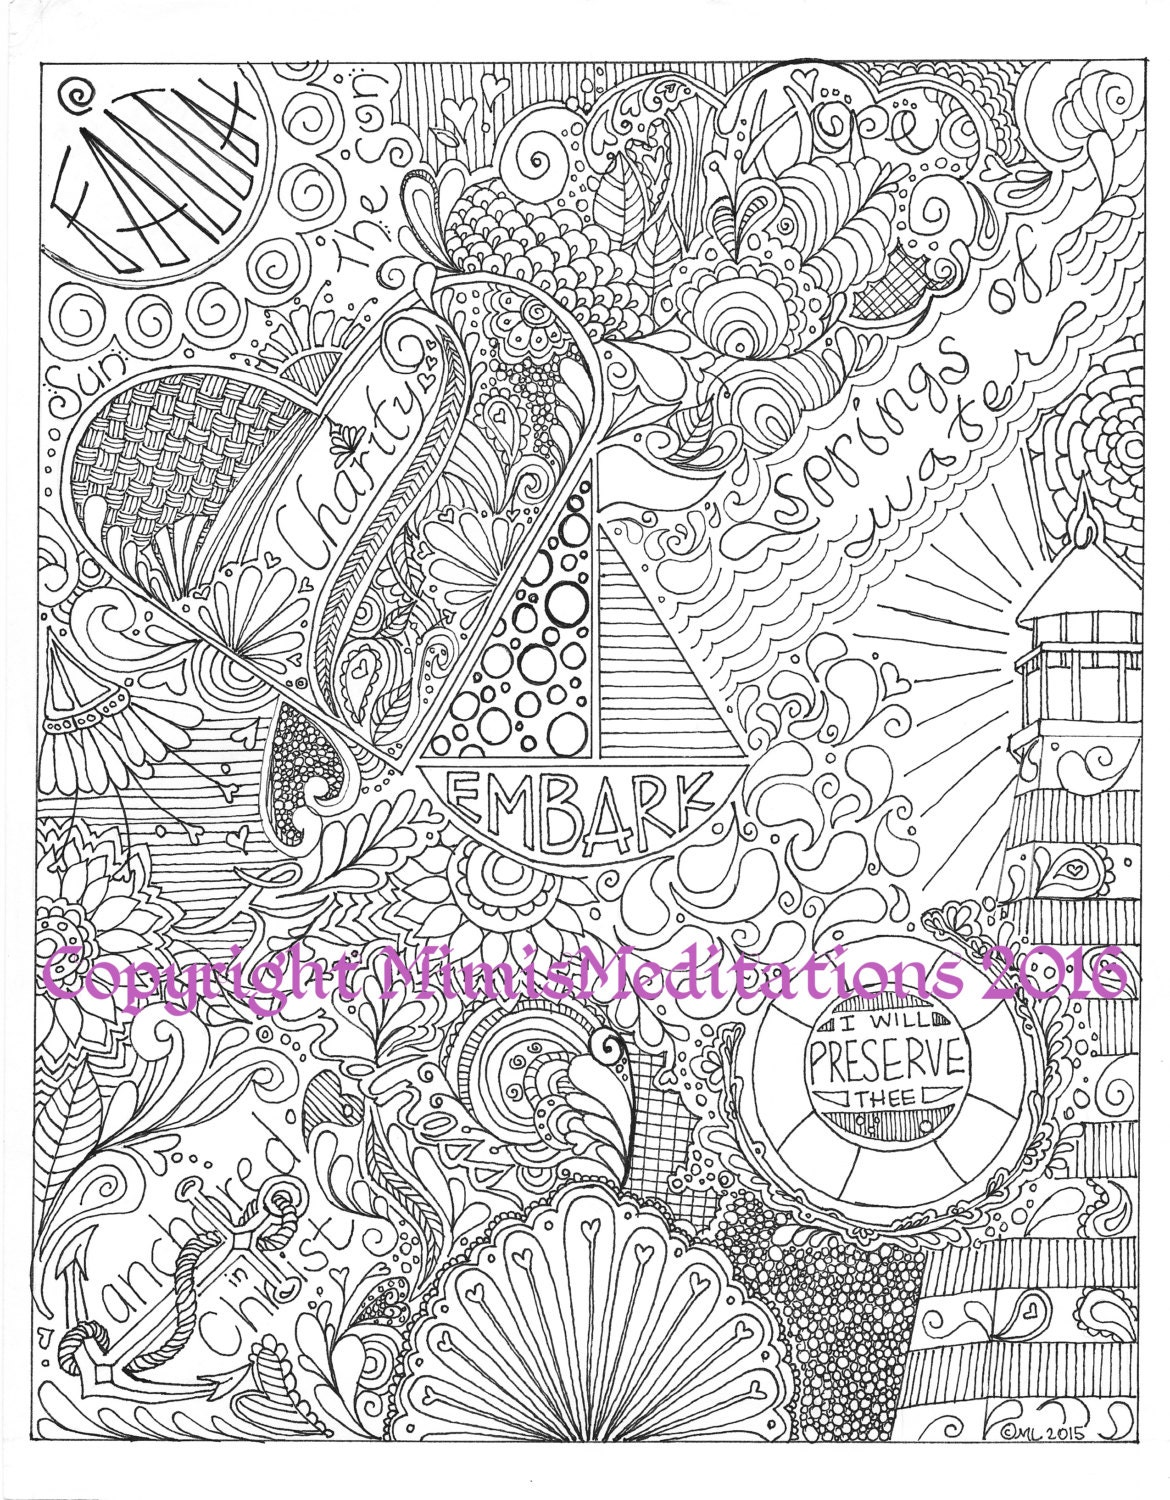 Inspirational Coloring Page With Theme Embark And Anchored In